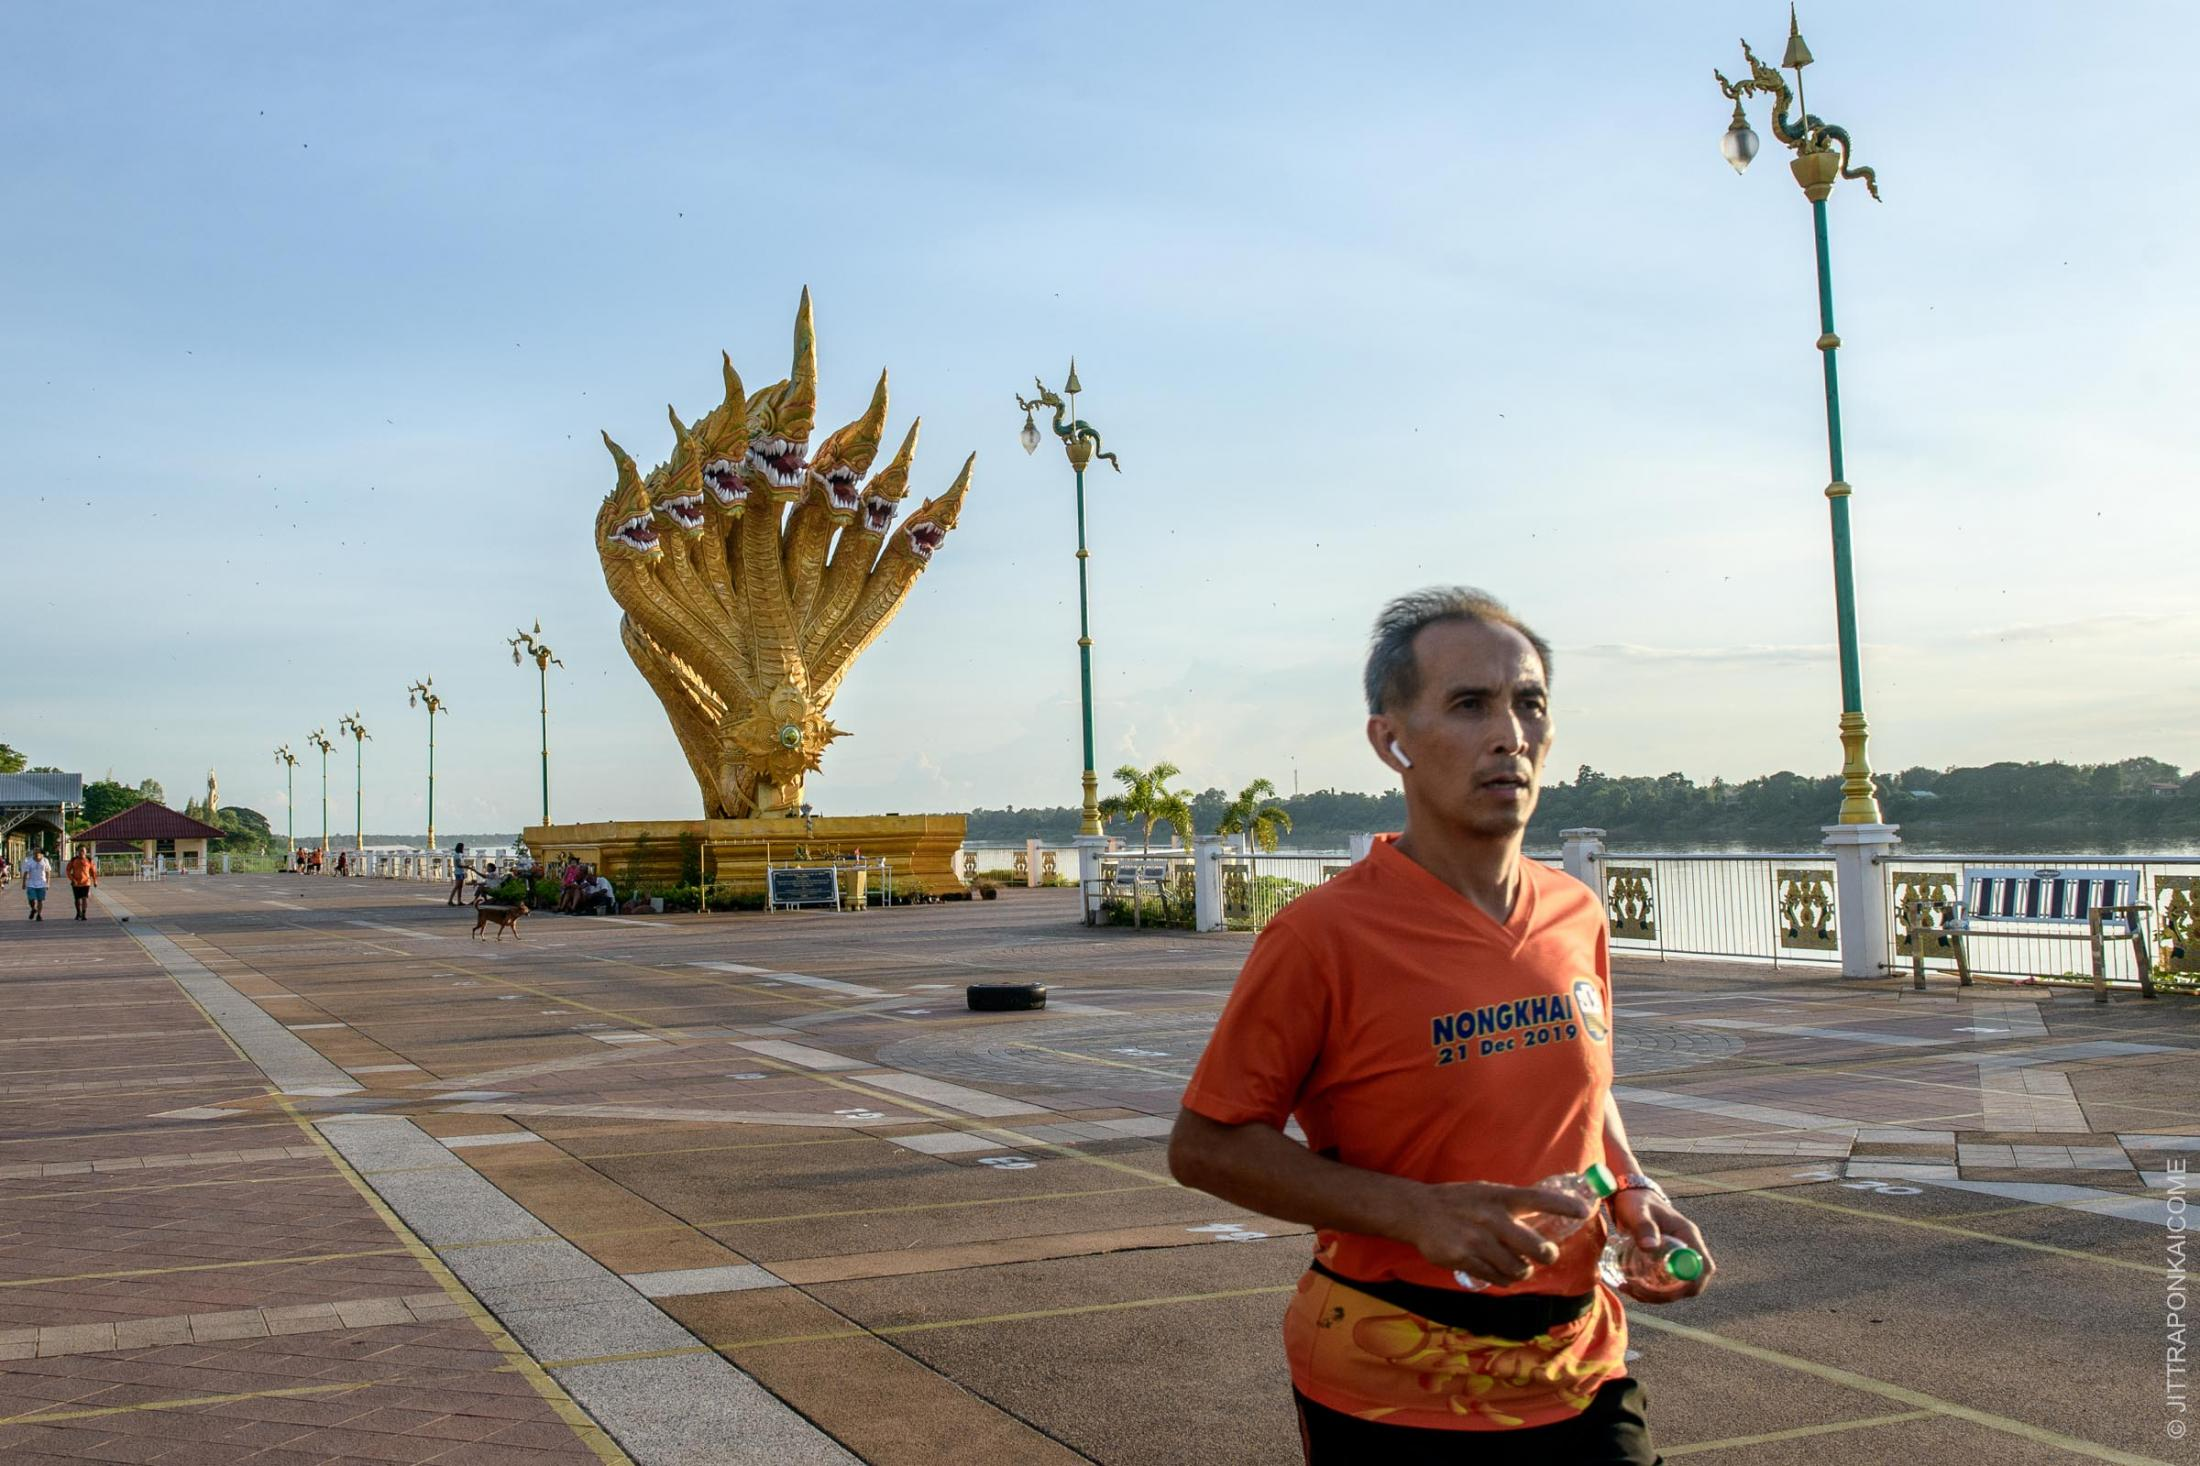 People's daily lives and activities are closely linked to the Mekong River. Nowadays, in the rainy season, the water level is lower than usual. Phon Phisai, Nong Khai, Thailand – August 2020.